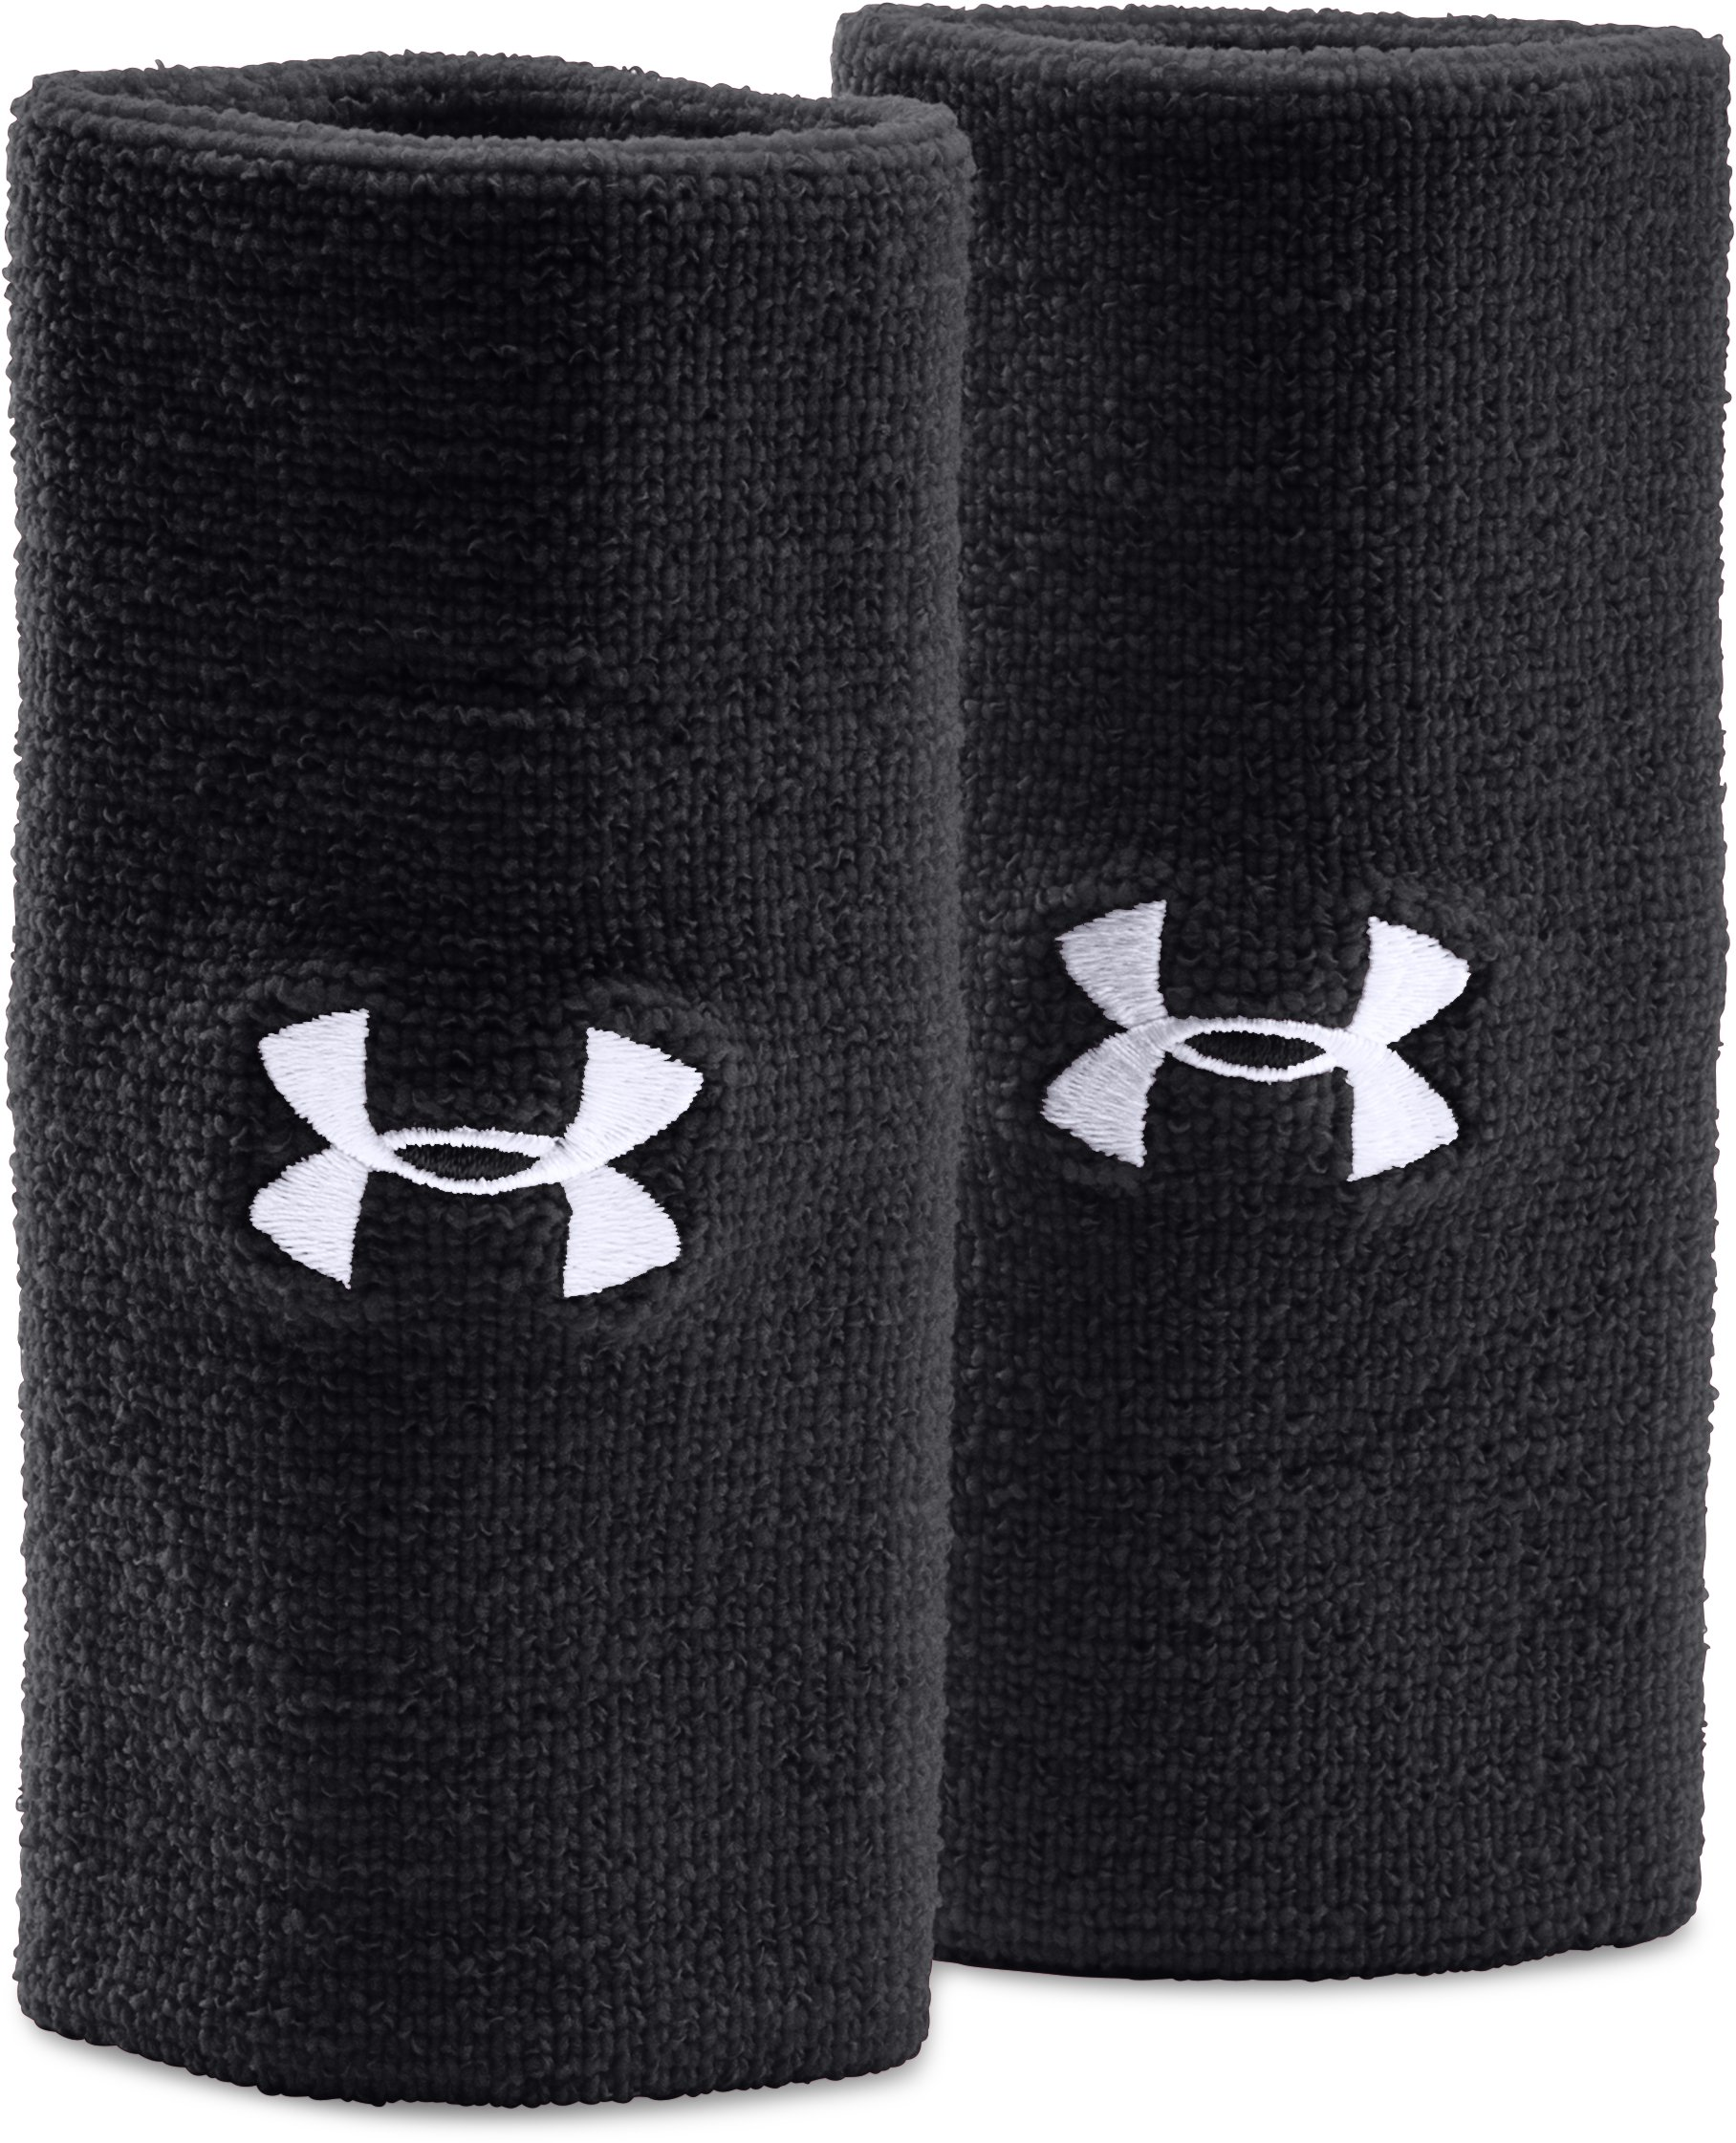 "sports wristbands 6"" UA Performance Wristband 2-Pack Great protection for kettlebell lifting...Excellent wristbands !!!...Soaks up sweat nice and evenly."